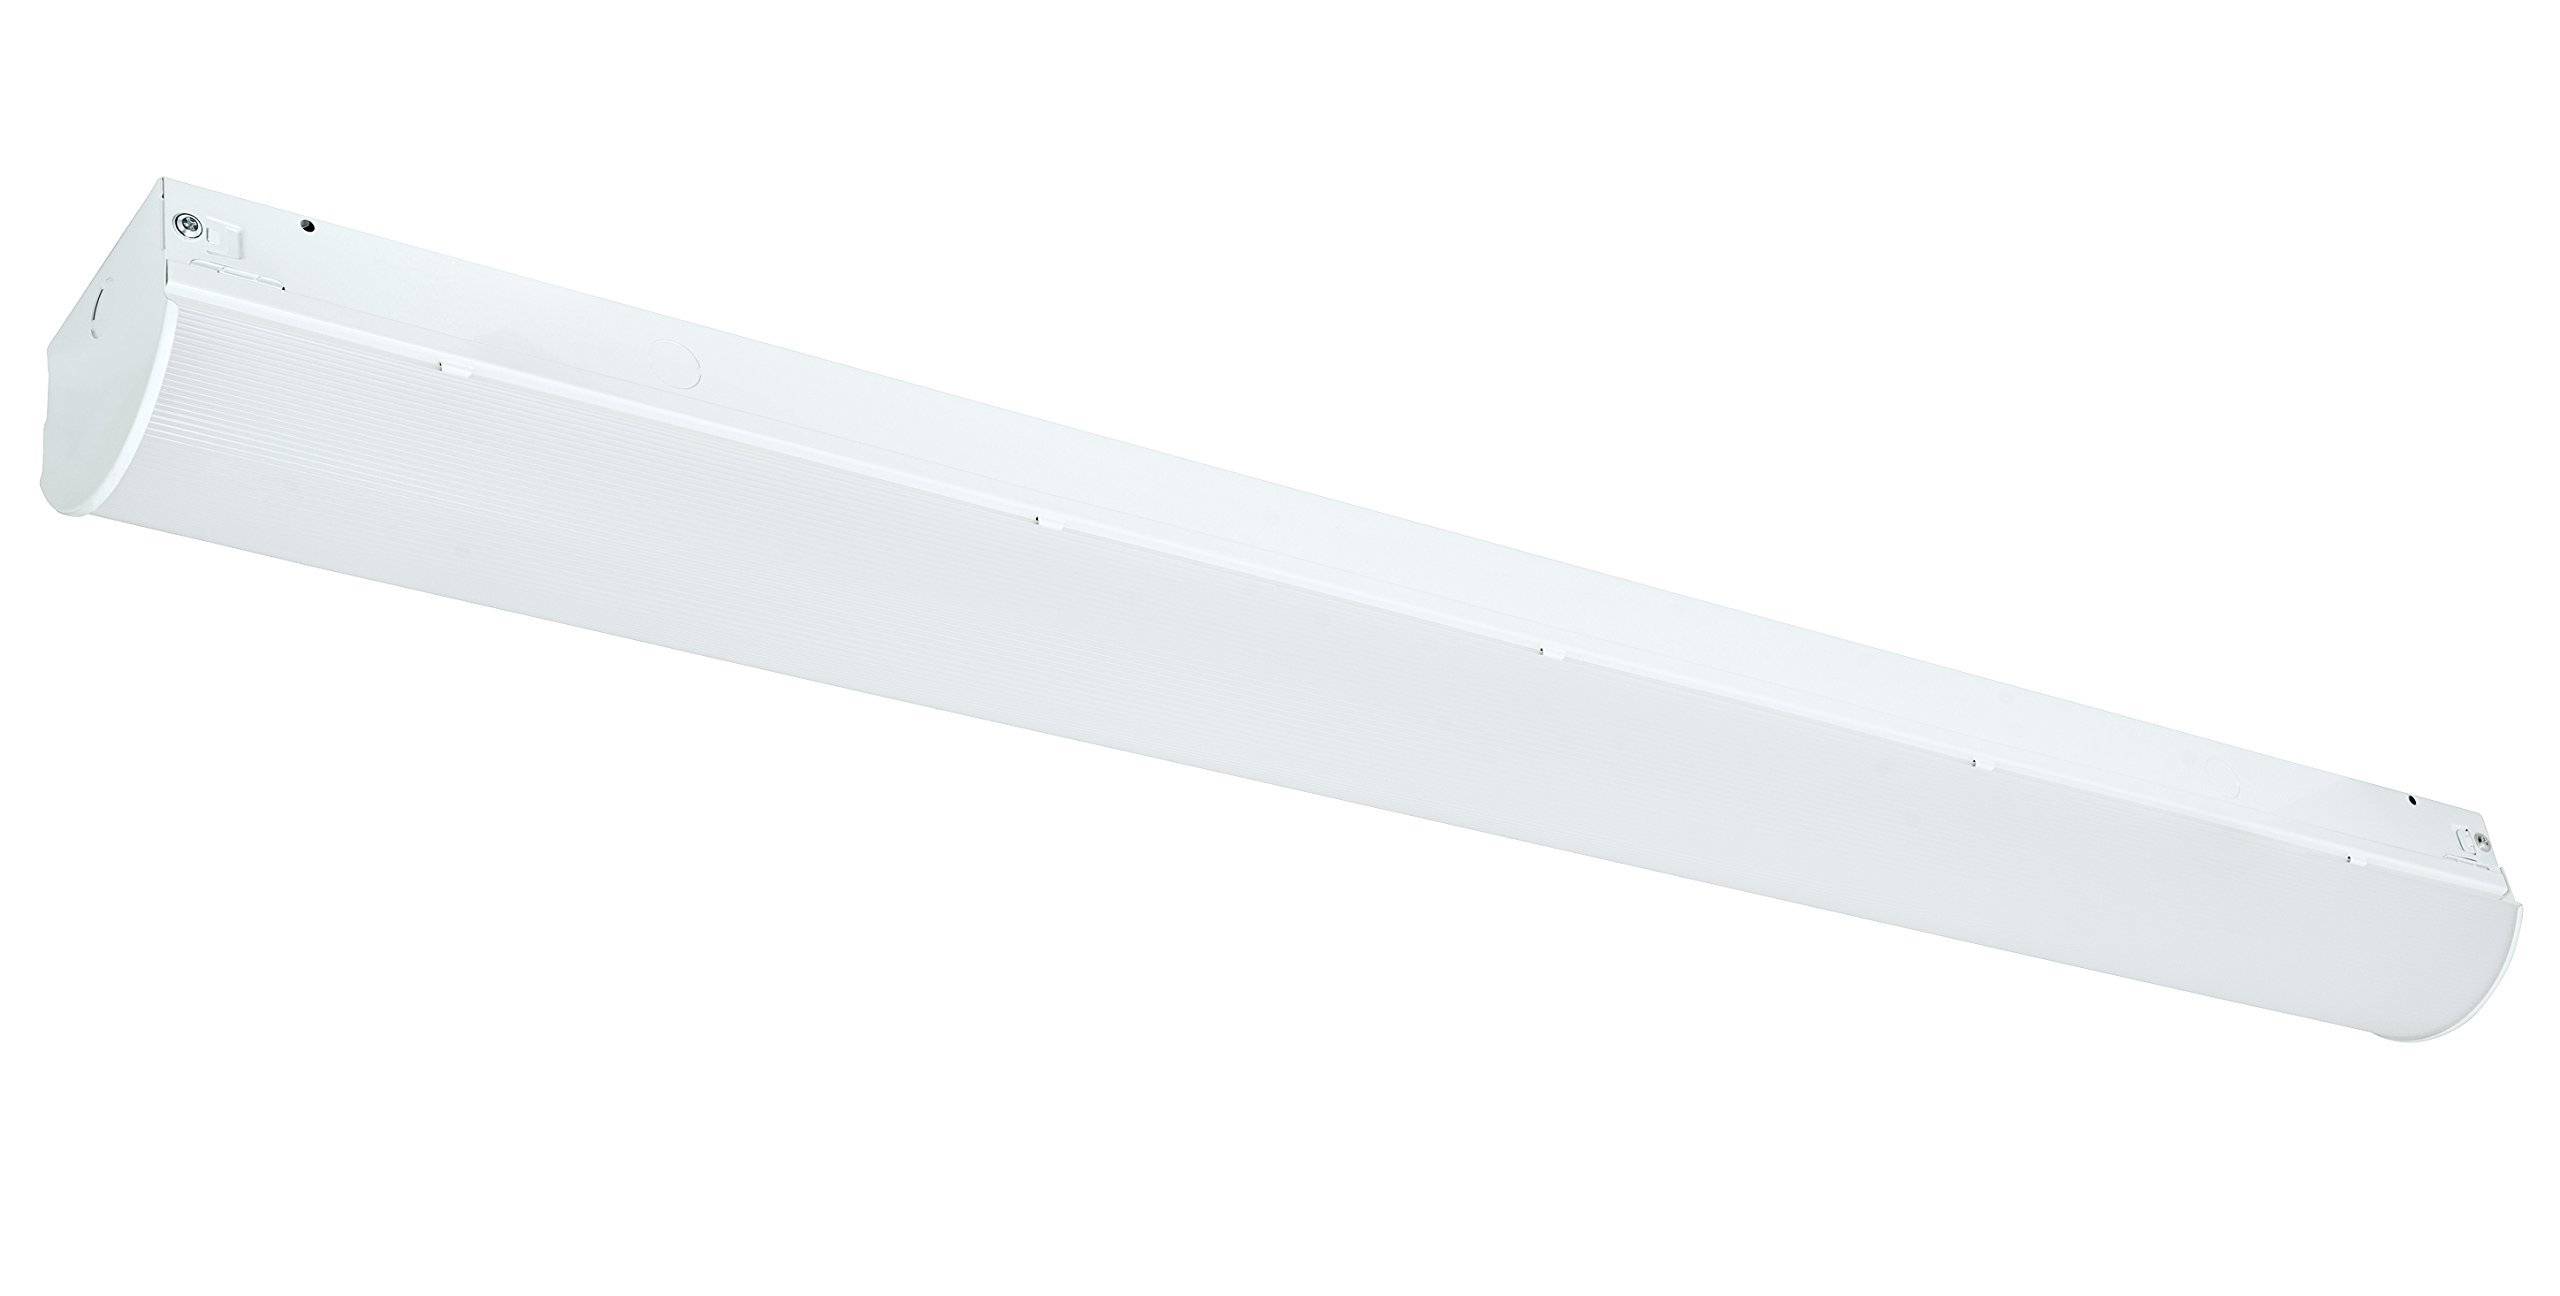 Westgate Lighting LED Indoor 4FT 40W Strip Light- Steel Base Housing- 120-277V AC- Ceiling Mounted- ROHS compliant- DLC Approved- Dimmable (5000K White)